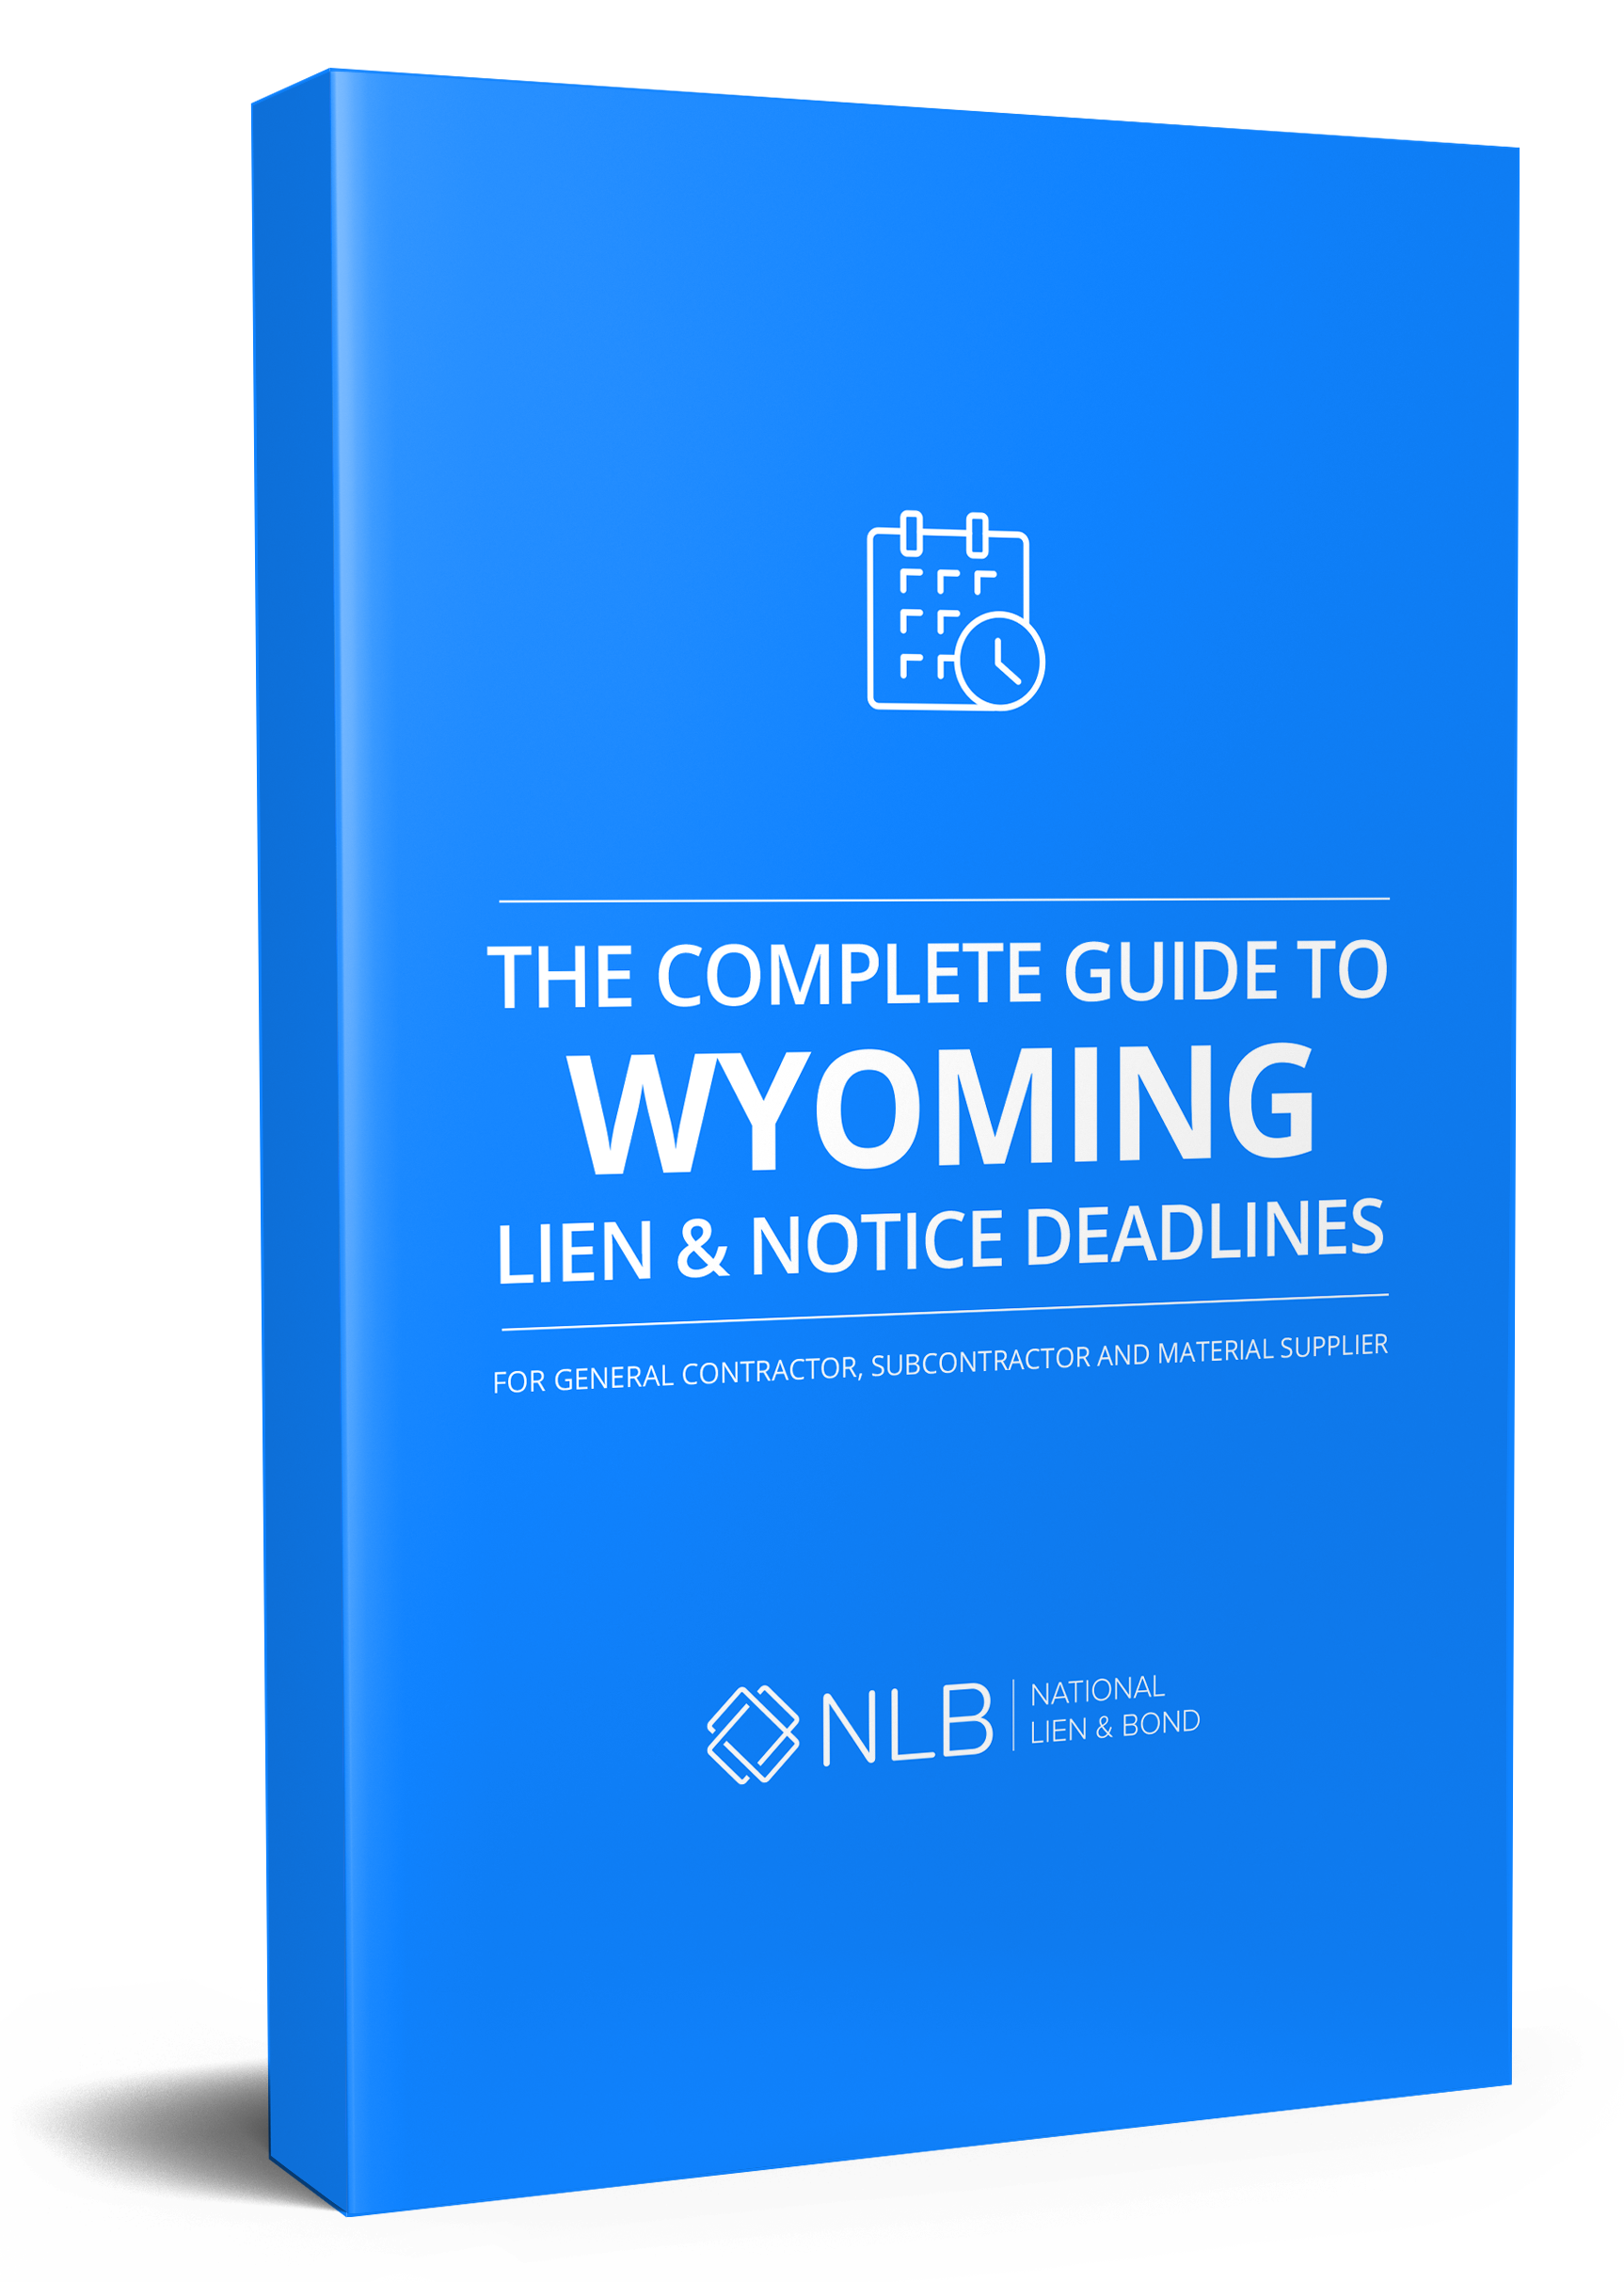 wyoming_Mockup.png